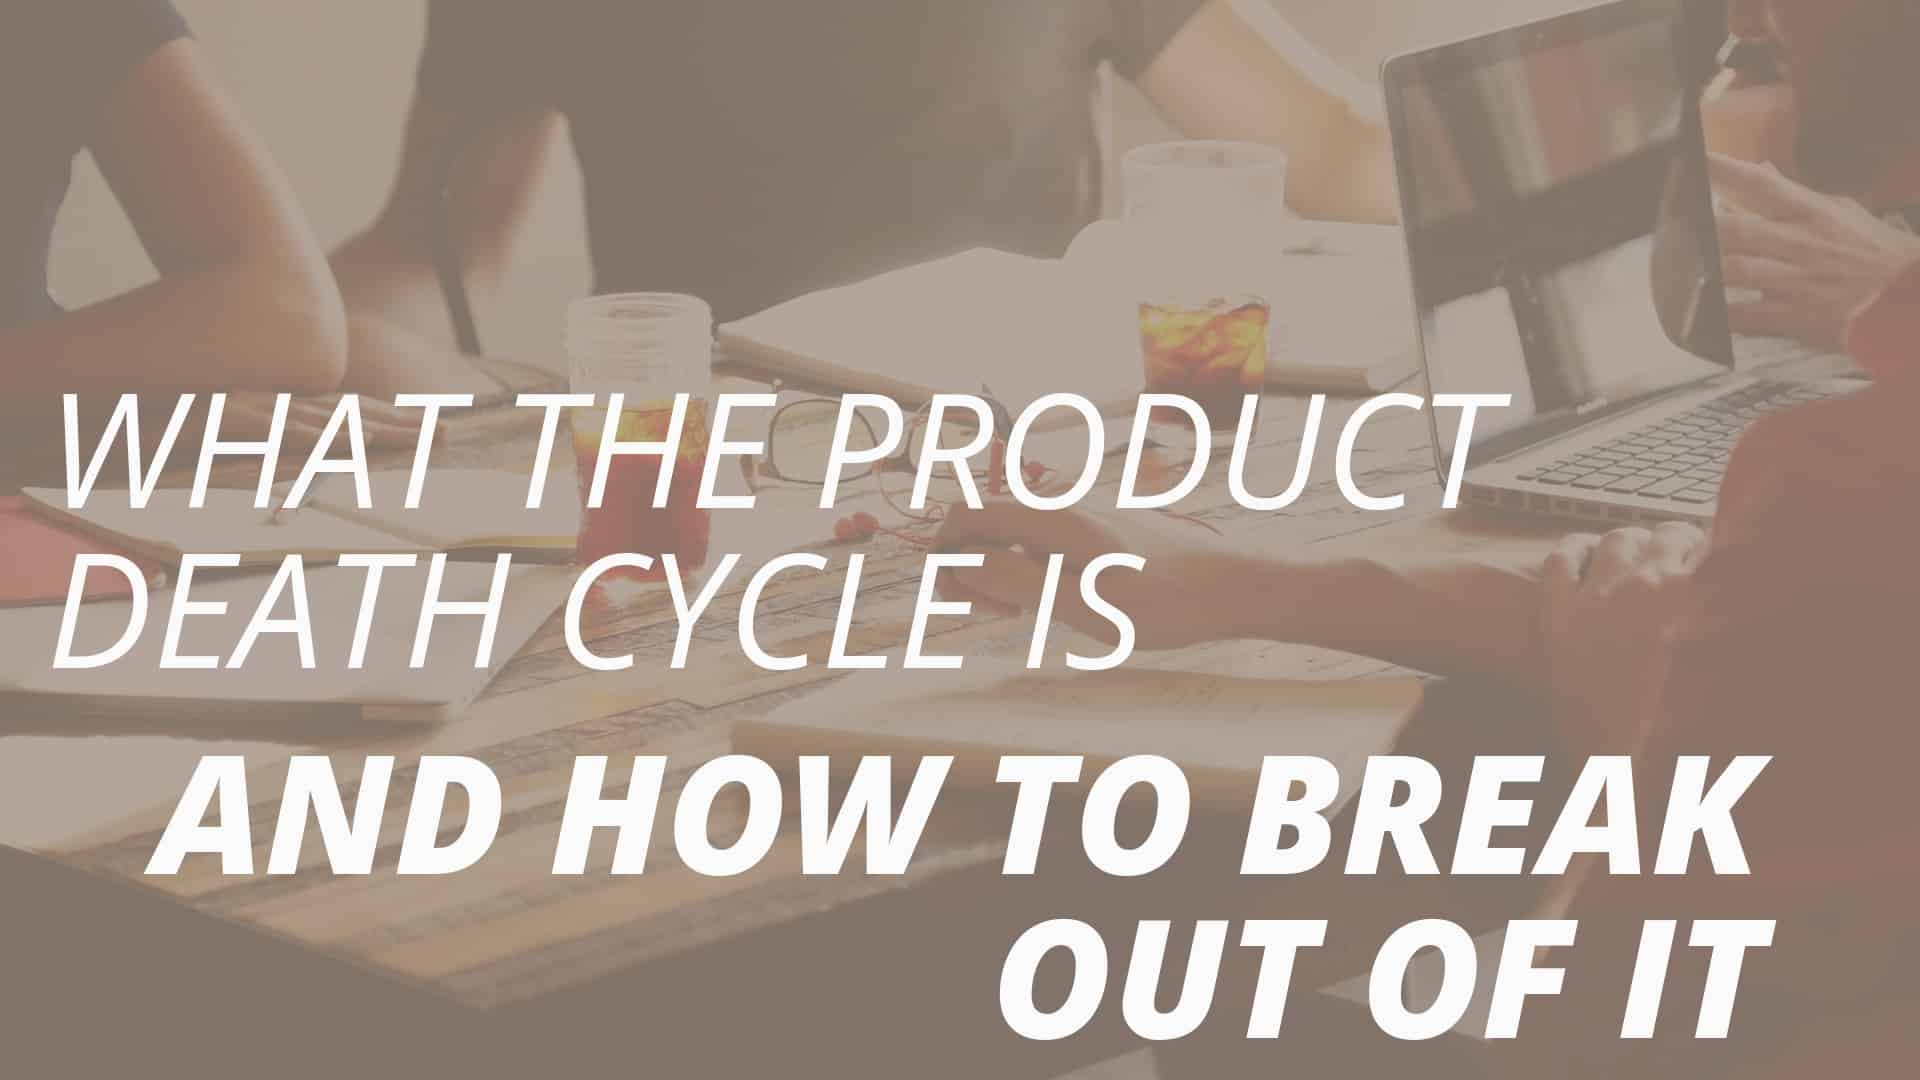 What the Product Death Cycle Is and How to Break Out Of It